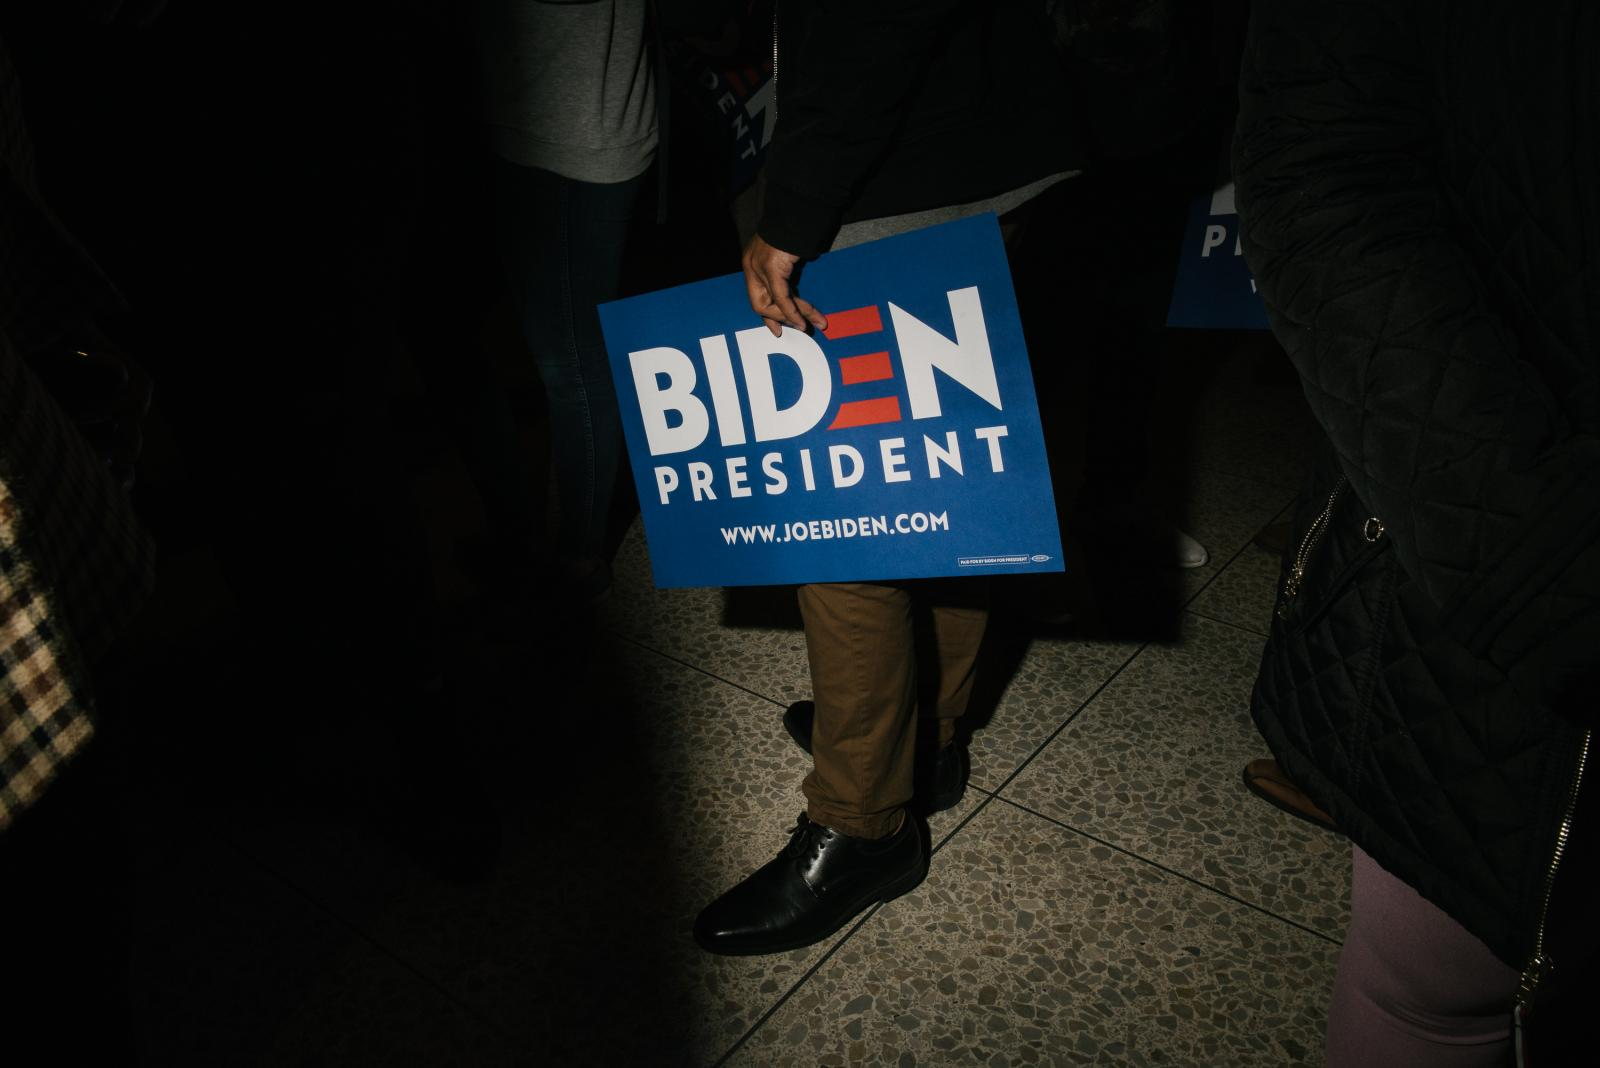 A supporter holds a sign to support former Vice President Joseph R. Biden Jr. after he spoke at the National Constitution Center in Philadelphia, PA on Tuesday, March 10, 2020. Biden and Senator Bernie Sanders both cancelled their Cleveland, Ohio rallies because of concerns about the coronavirus. Hannah Yoon NYTPRIMARY